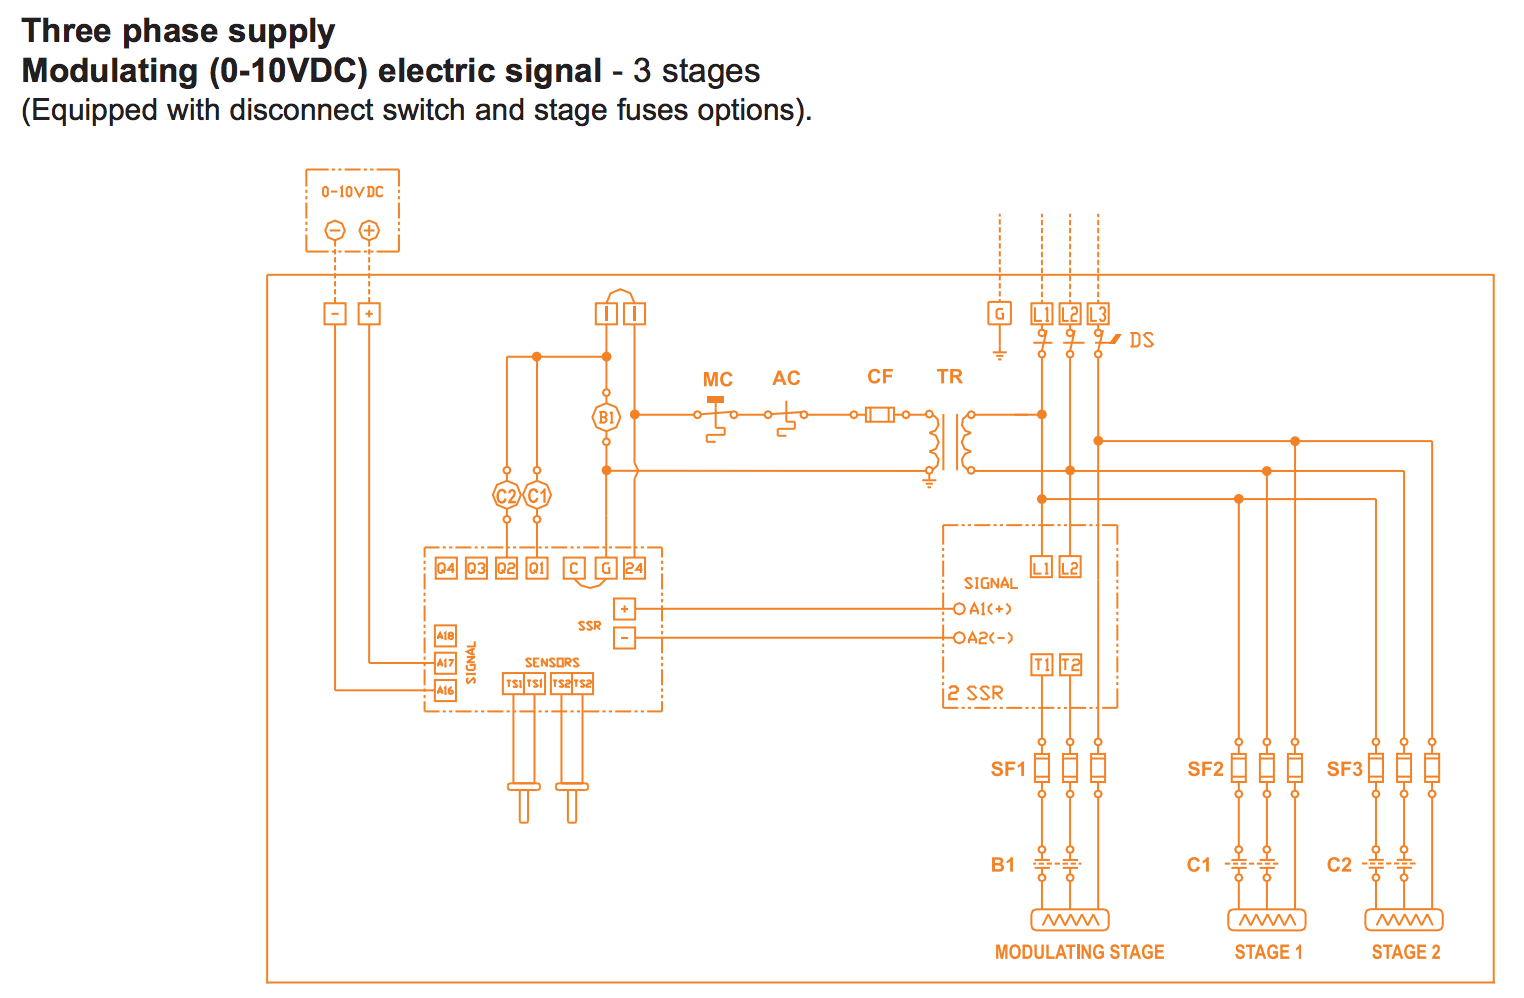 additionally wiring diagram dual immersion heater switch links also image free furthermore  further  besides Three Phase Supply Modulating 0 10 VDC electric signal also  besides Chromalox immersion Heaters Features And Benefits1 also Custom 20Temperature 20Control 20Panel 4 further  in addition 1 furthermore Chromalox KUH  5  6 TT Diagram 302s. on chromalox immersion heater wiring diagram